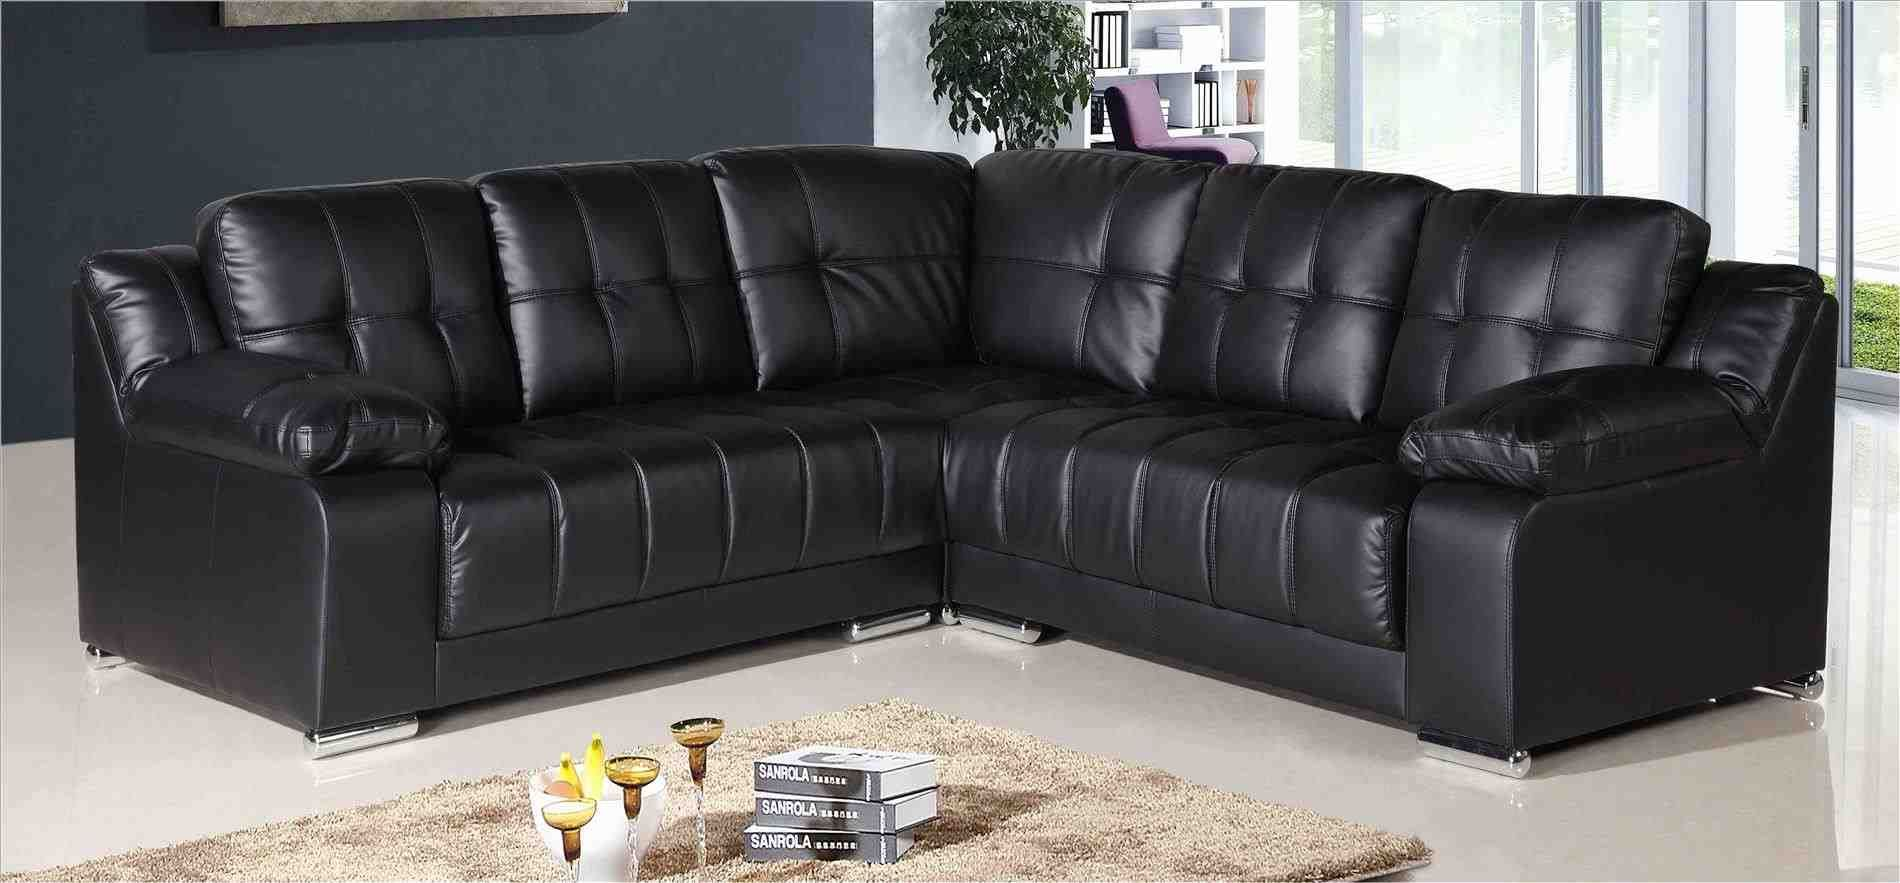 Cheap Sofa London Archive With Tag Where To Buy Cheap Sofas In London Cheap Living Room Furnit Cheap Living Room Furniture Cheap Sofas Elegant Living Room